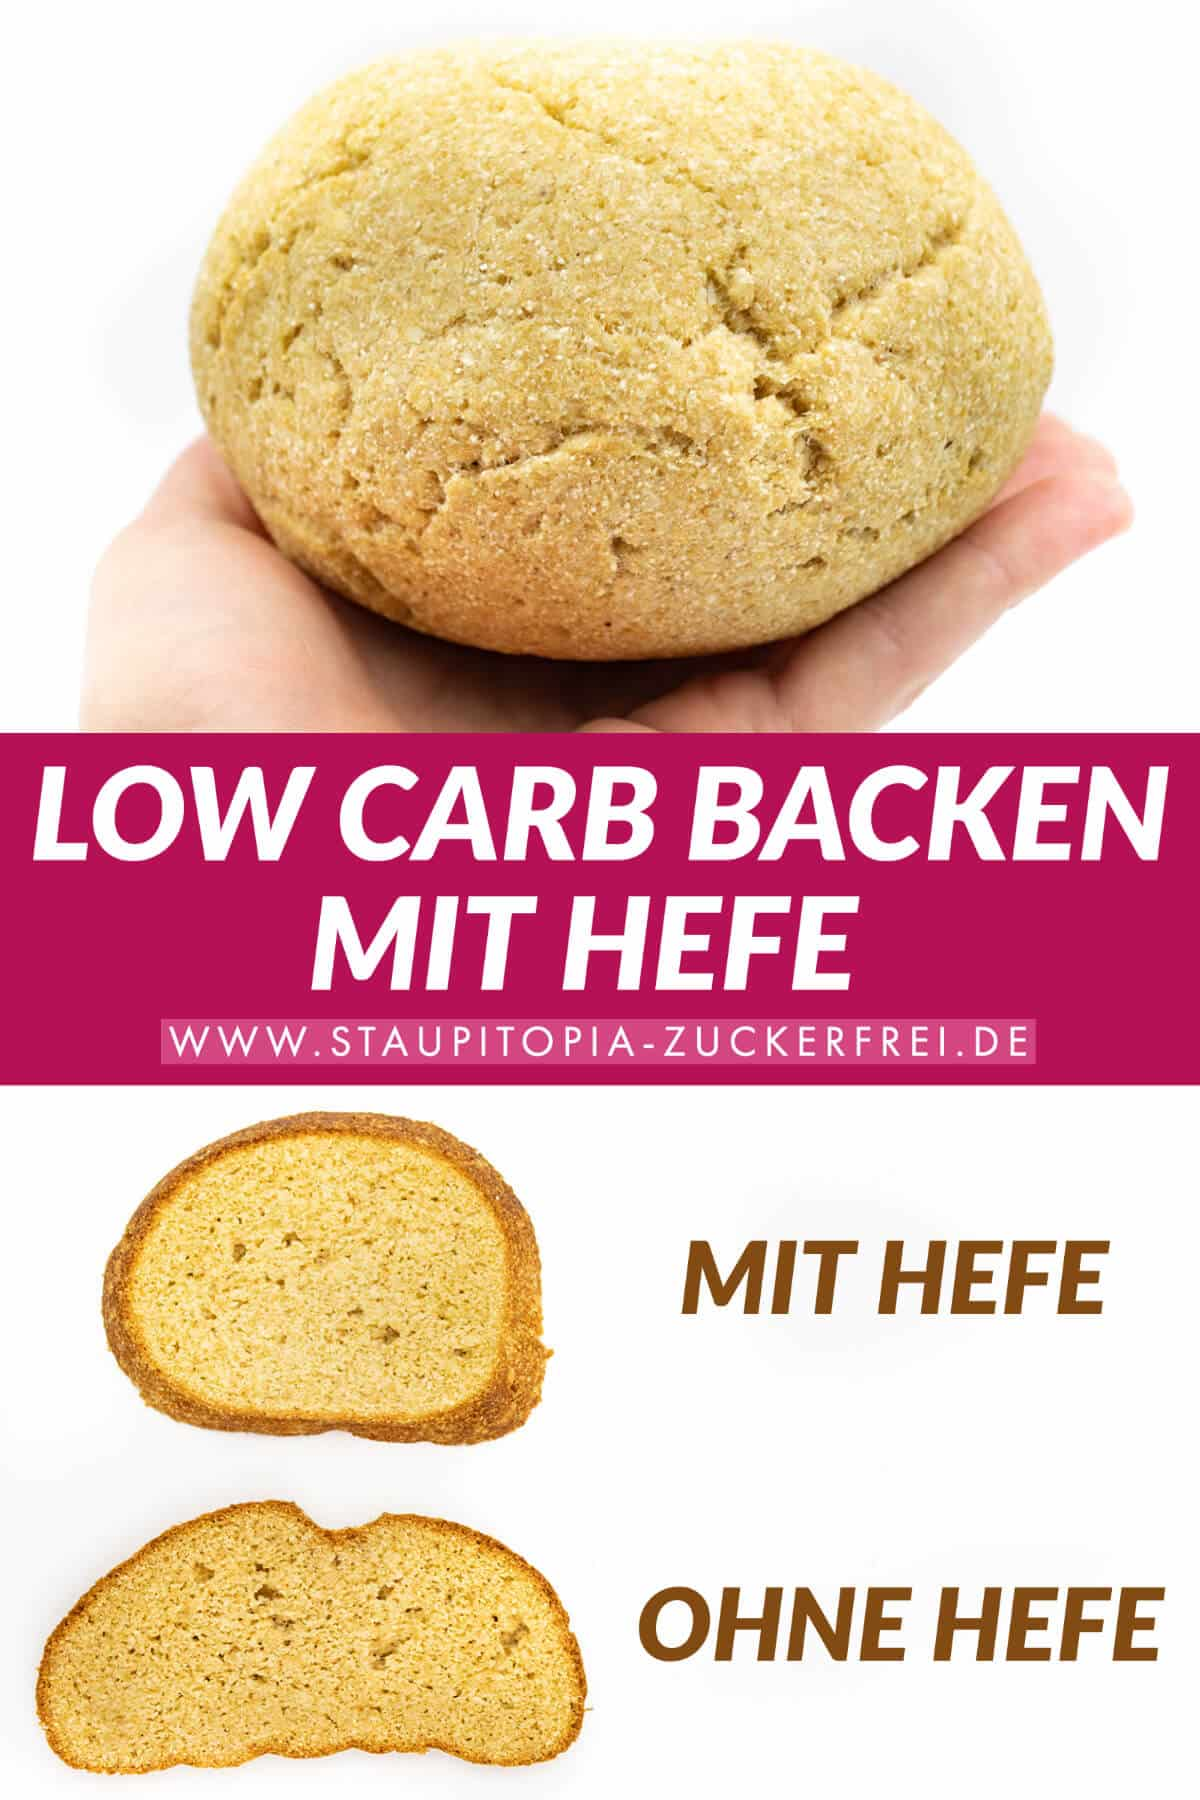 Zuckerfrei Backen mit Hefe Low Carb